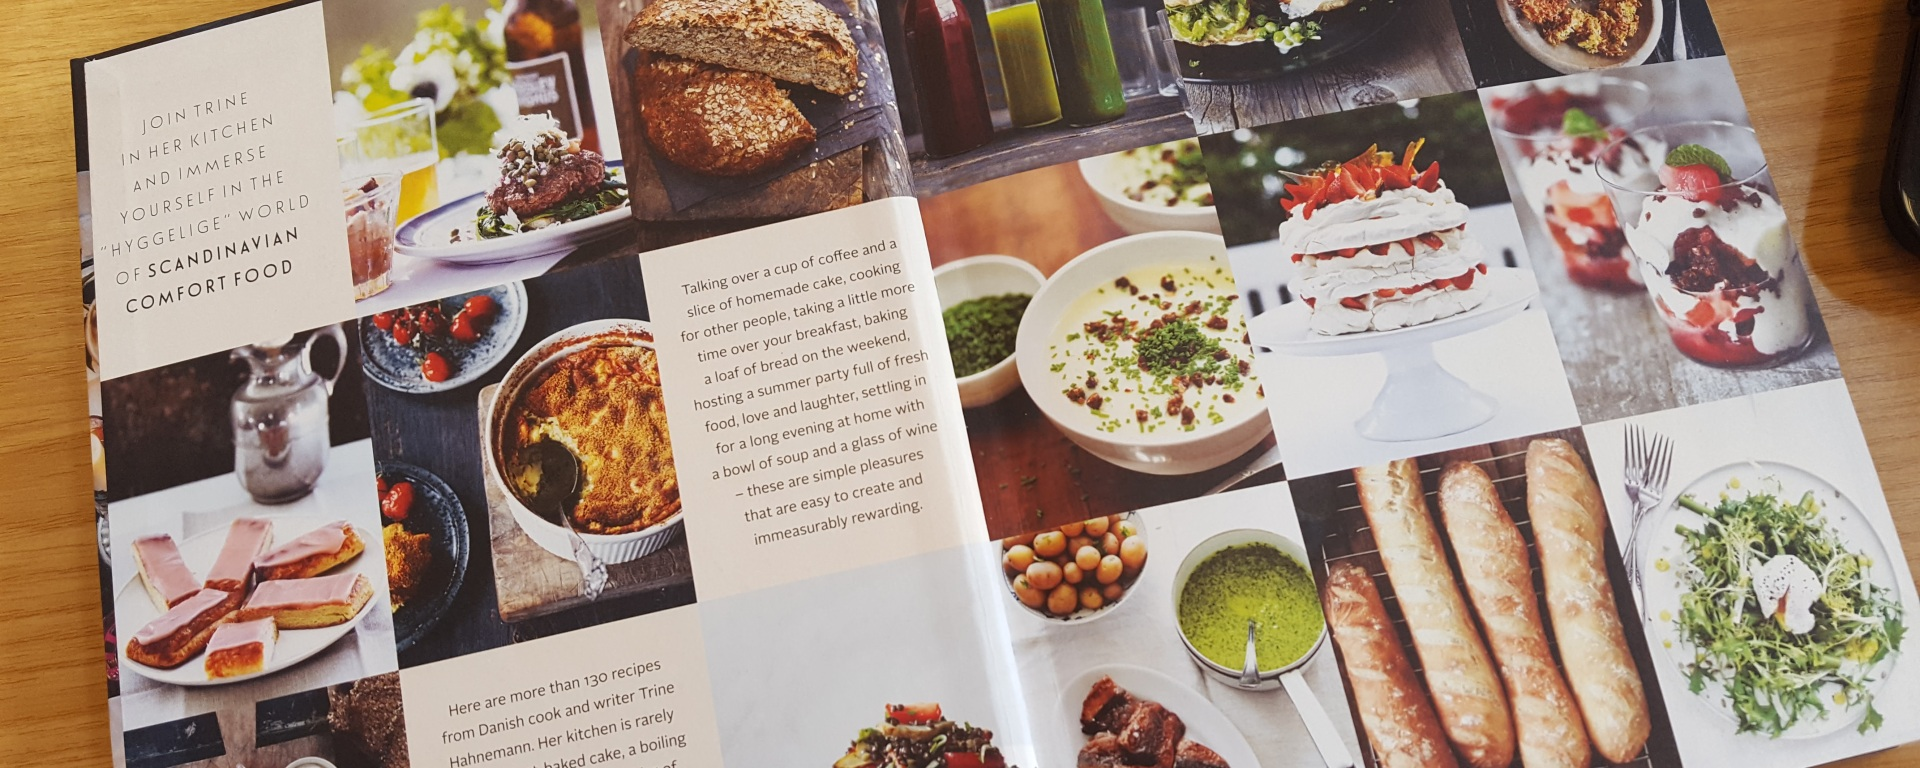 Hygge book scandinavian comfort food by trine hahnemann how to hygge book scandinavian comfort food by trine hahnemann forumfinder Images